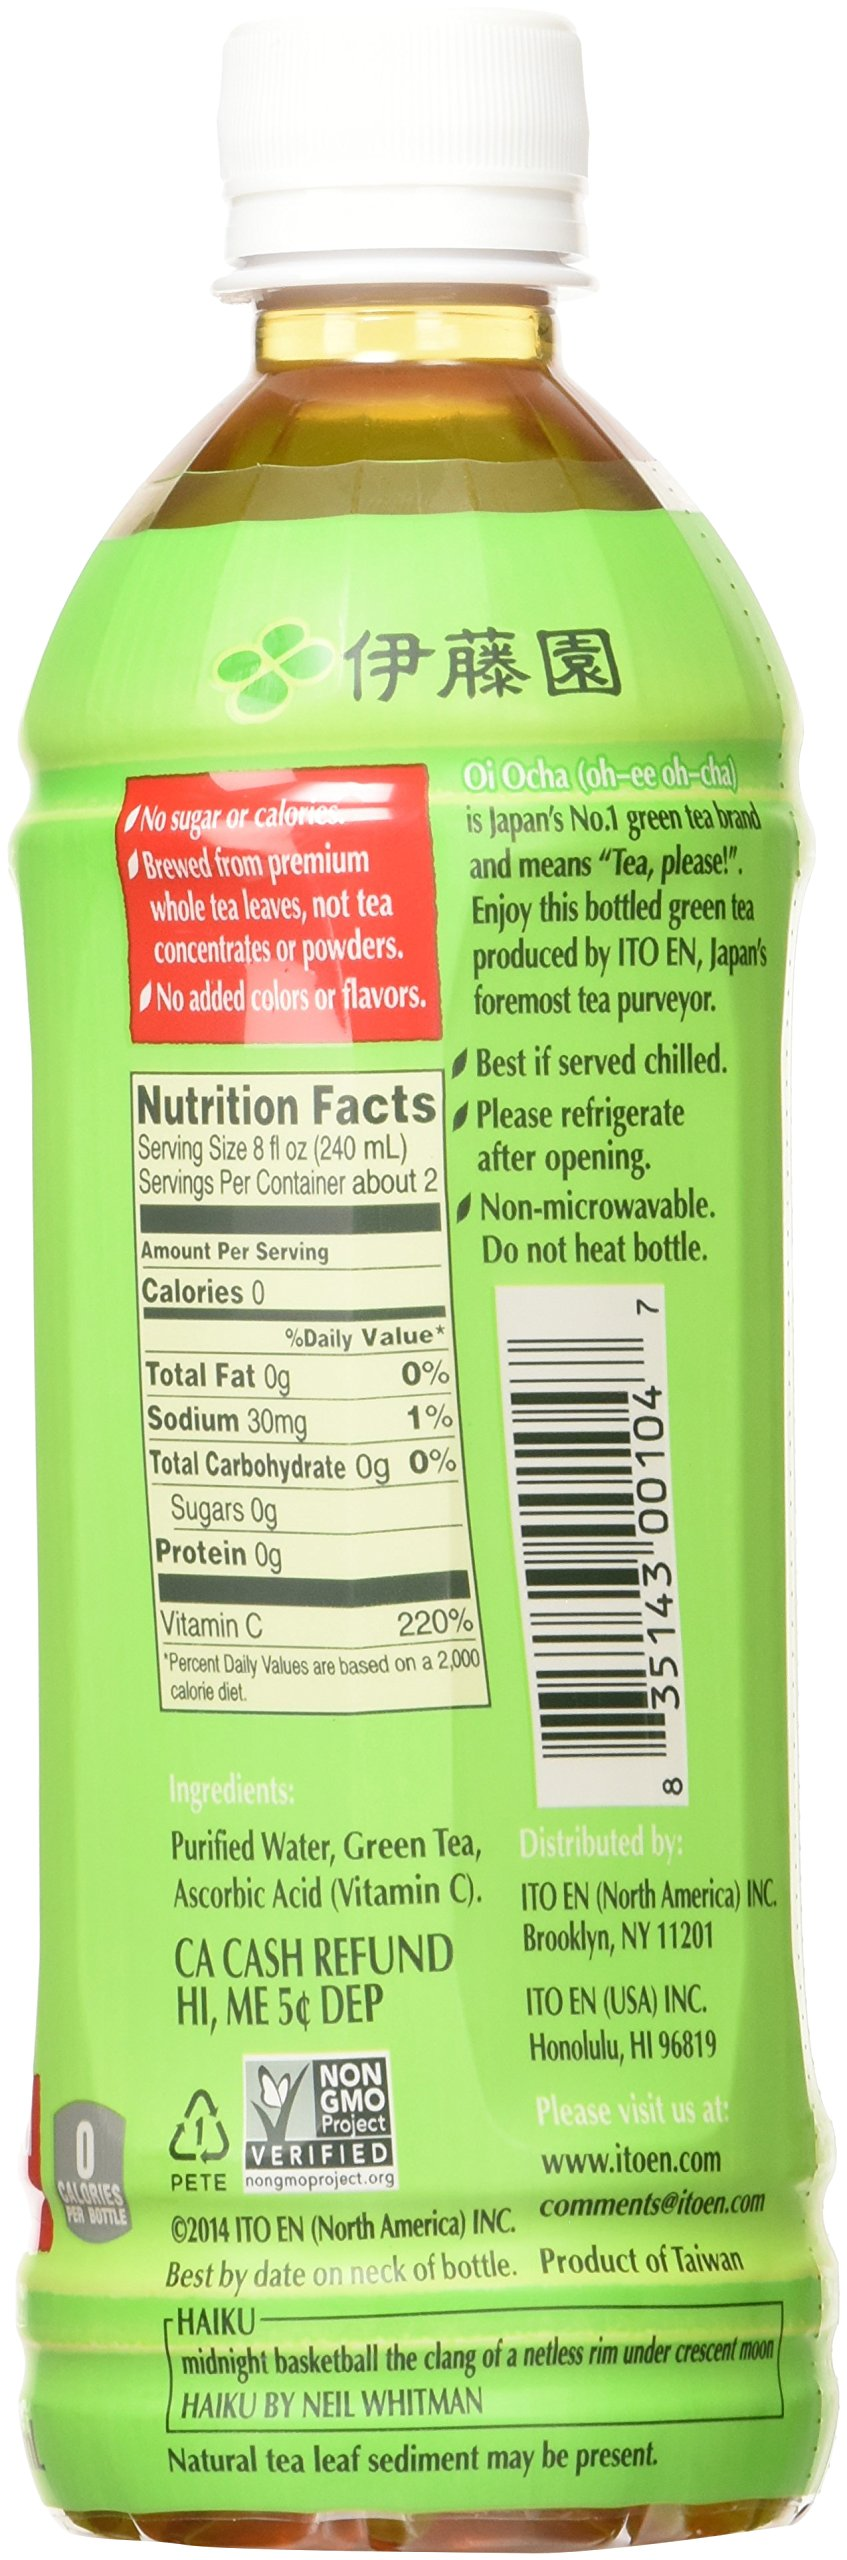 Ito En Oi Ocha Green Tea, Unsweetened, 16.9 Fluid Ounce (Pack of 12), Unsweetened, Zero Calories, with Antioxidants, Excellent Source of Vitamin C by Ito En (Image #4)